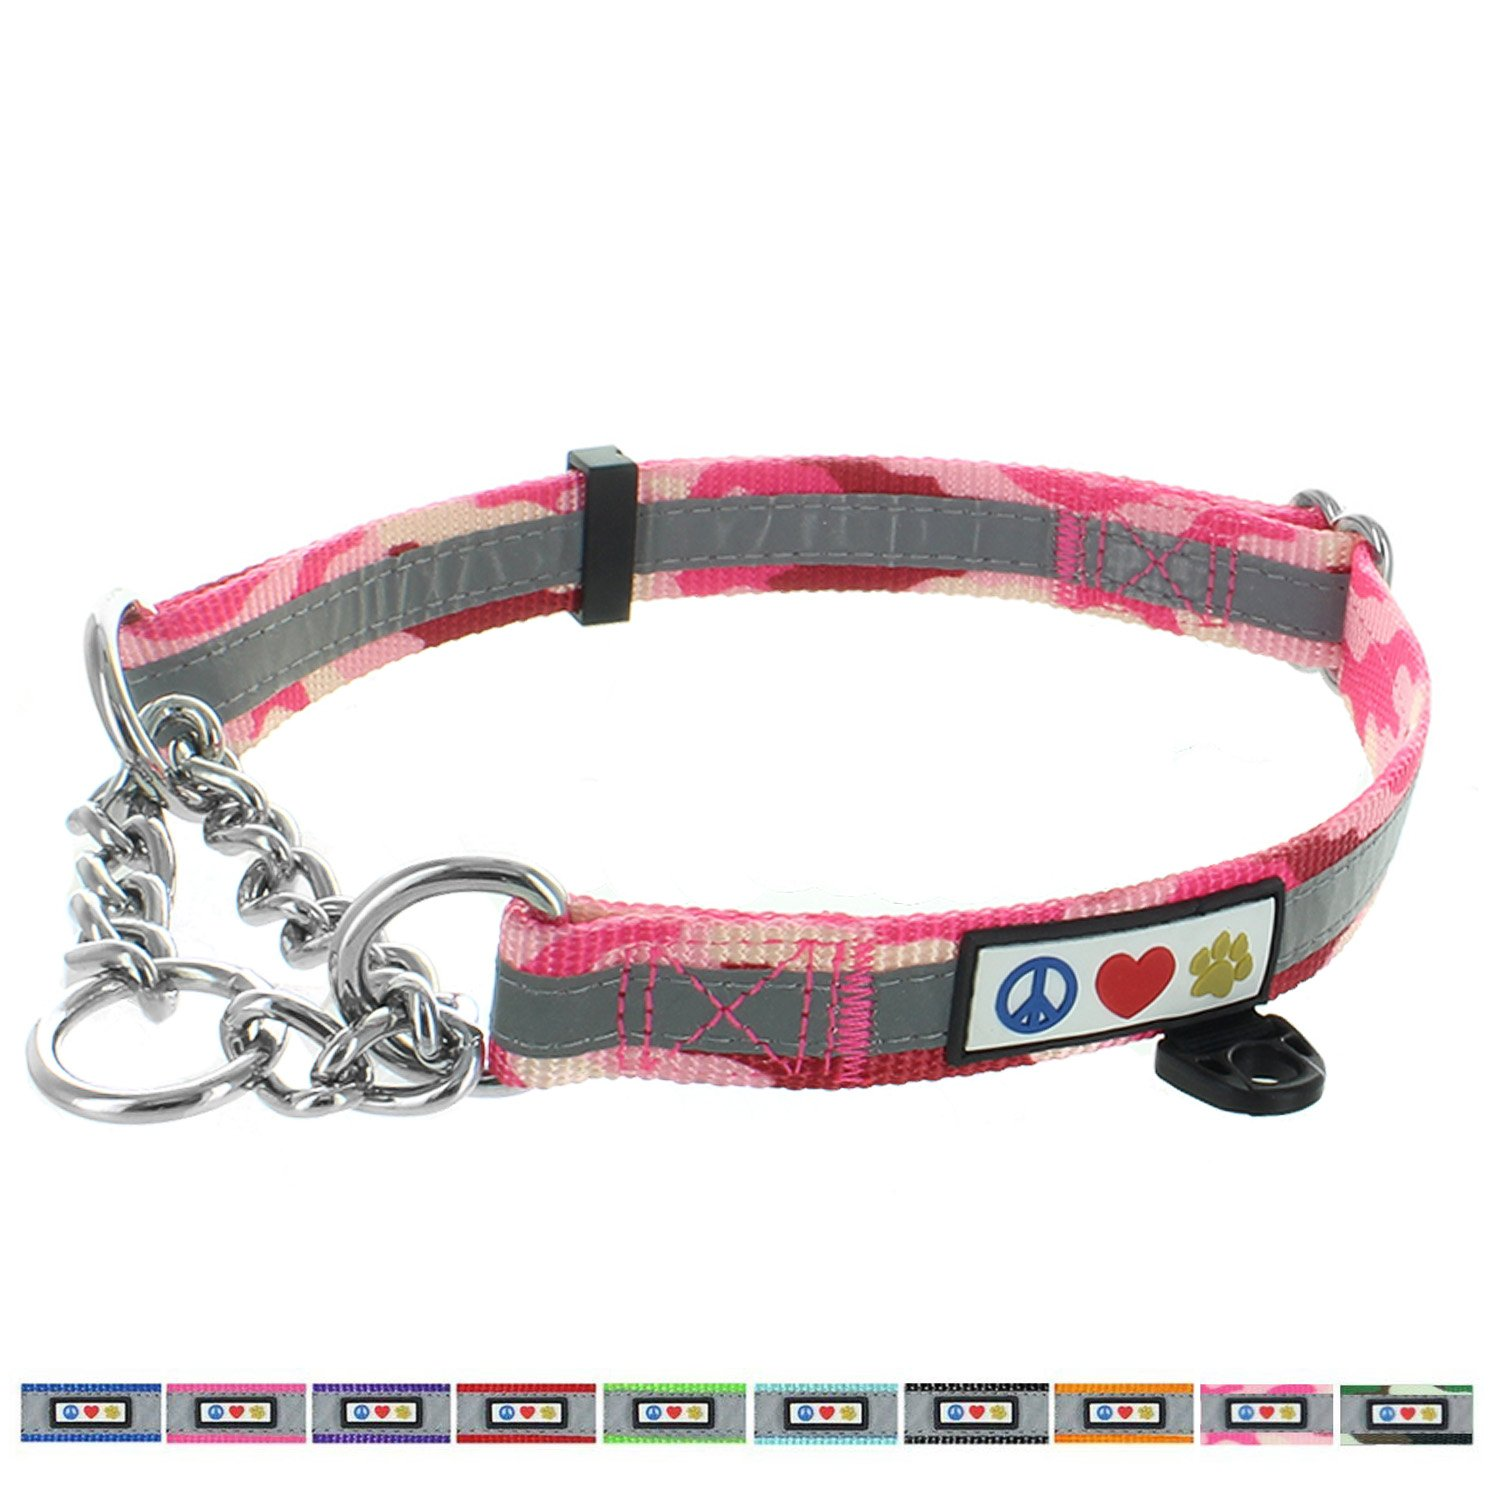 Pawtitas Obedience Training Collar Reflective Martingale Chain Dog Collar, Premium Quality, Obedience collar, dog chain, No Pull Dog Collar for Training, Half-Check Dog Collar Medium Pink Camouflage